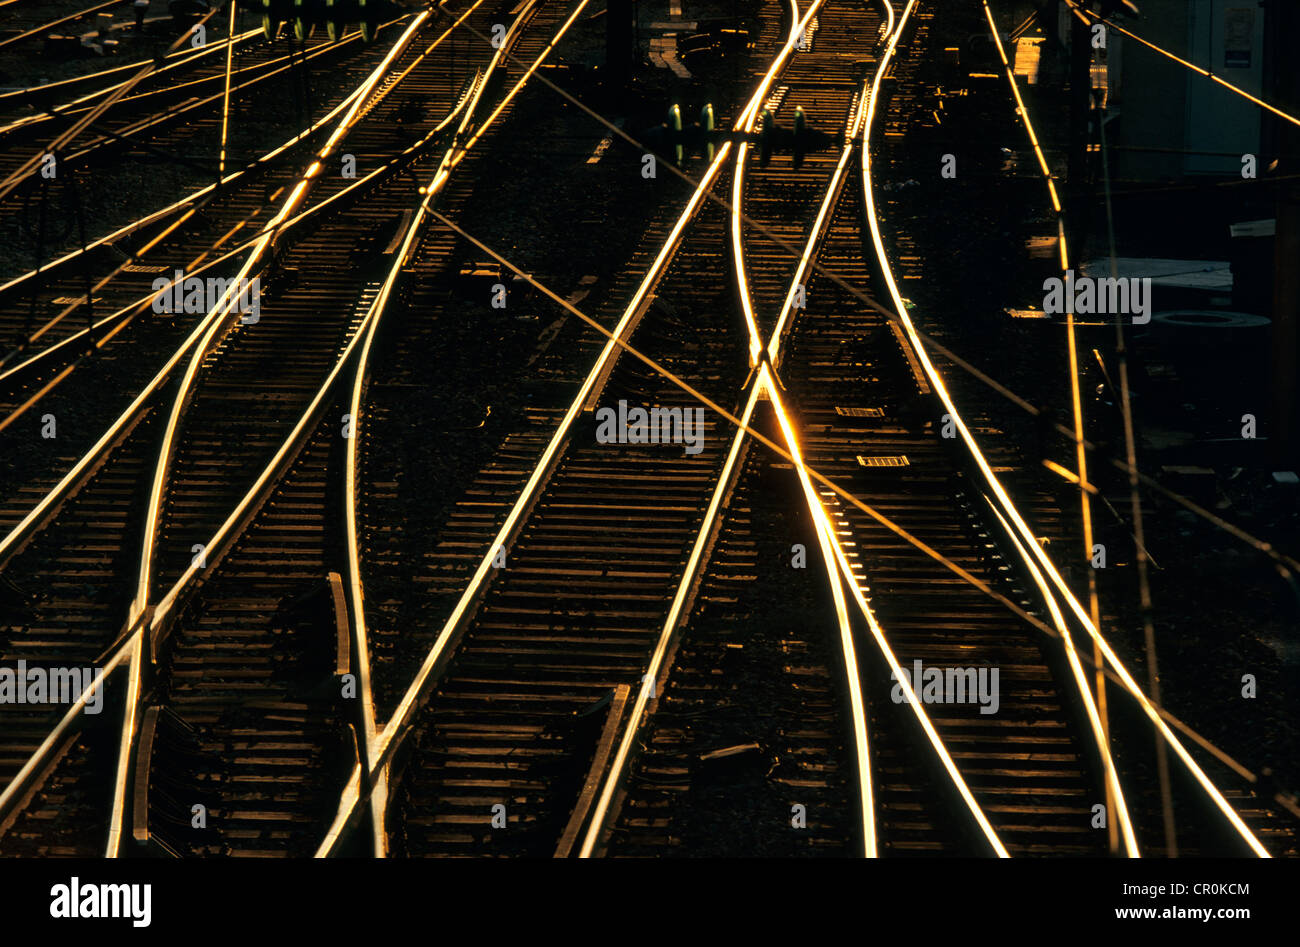 France, railway tracks network - Stock Image